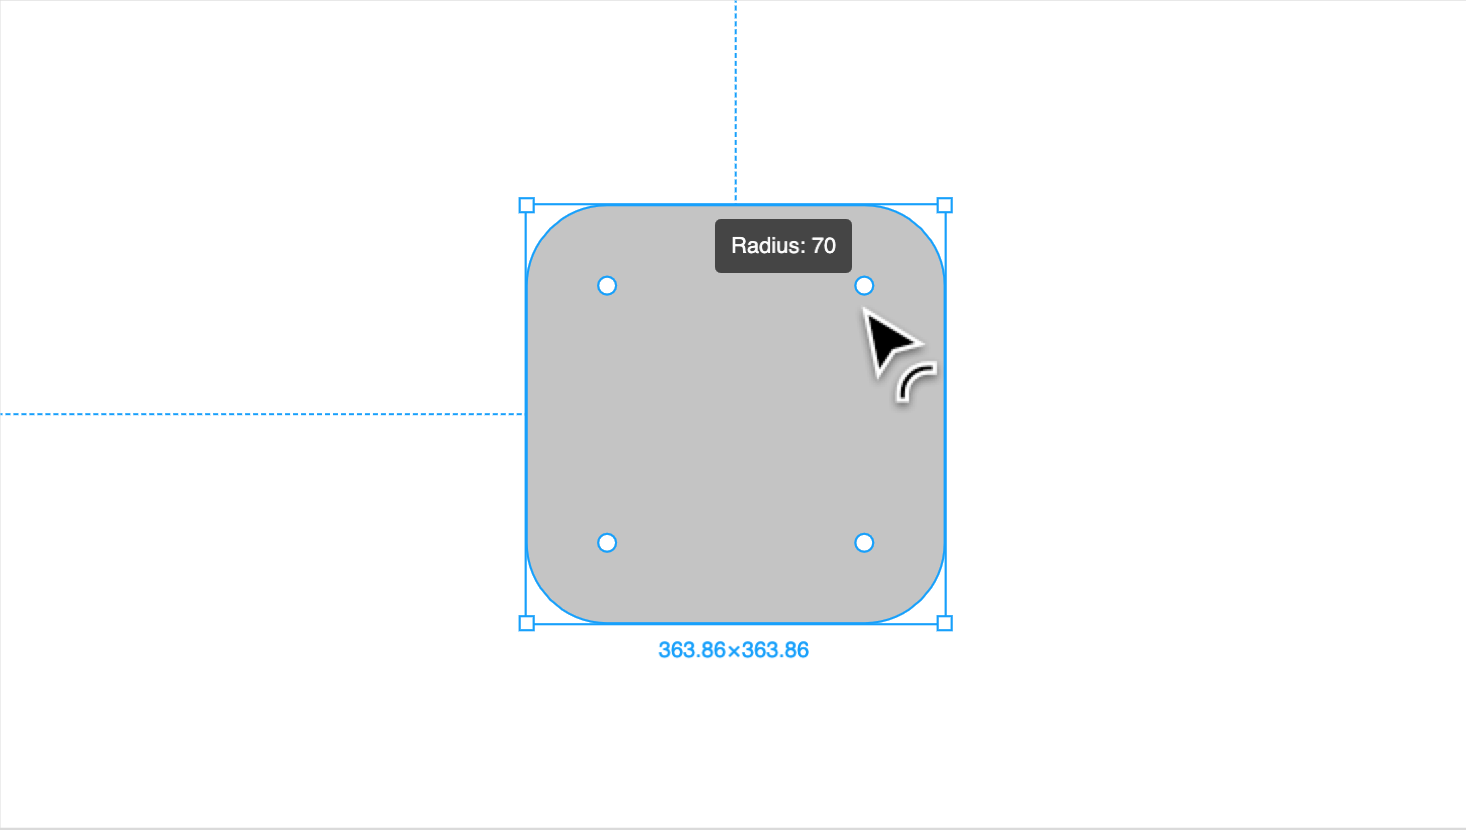 hight resolution of click and drag the handle towards the center of the object to round the corners